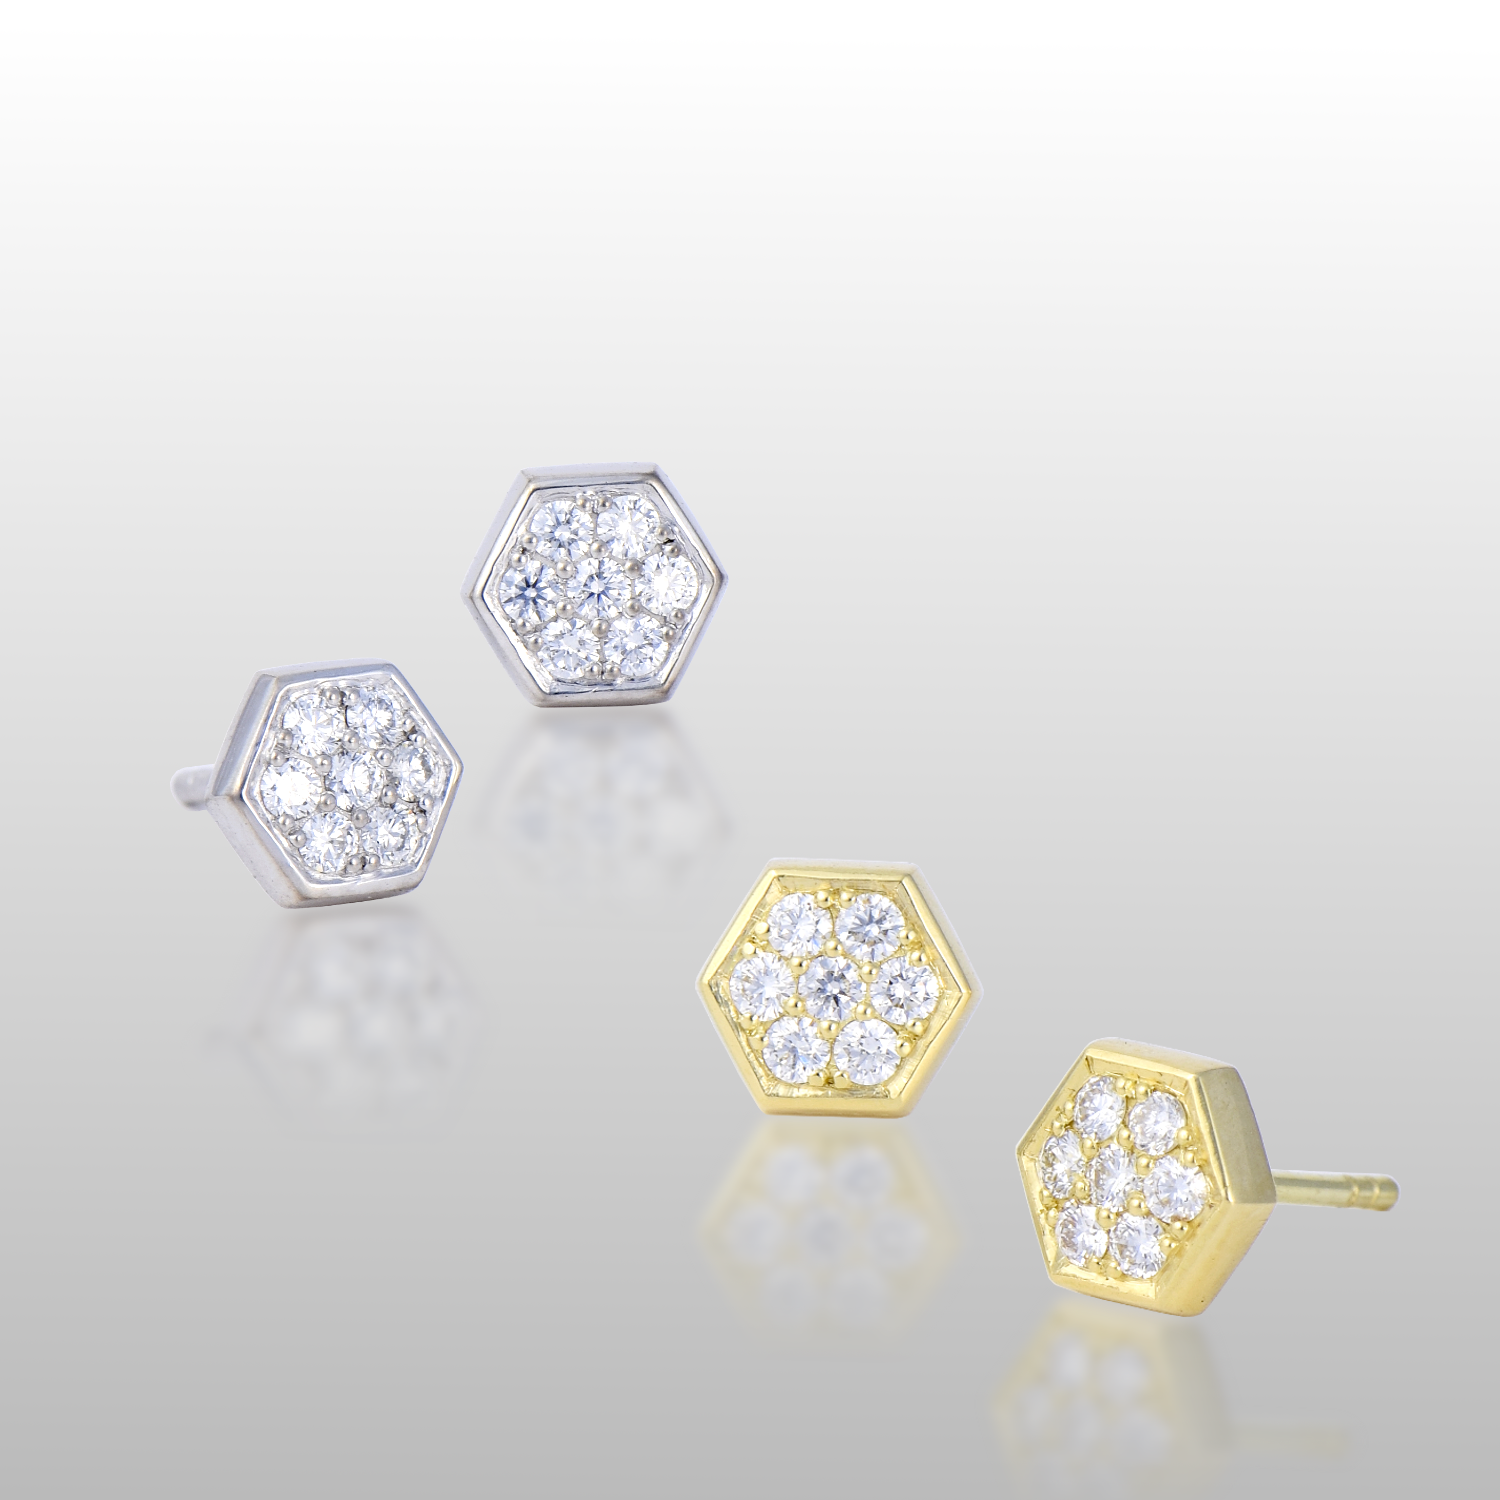 Hexagon Diamond Pave Ear Studs in 18k Gold or Platinum by Pratima Design Fine Art Jewelry Maui